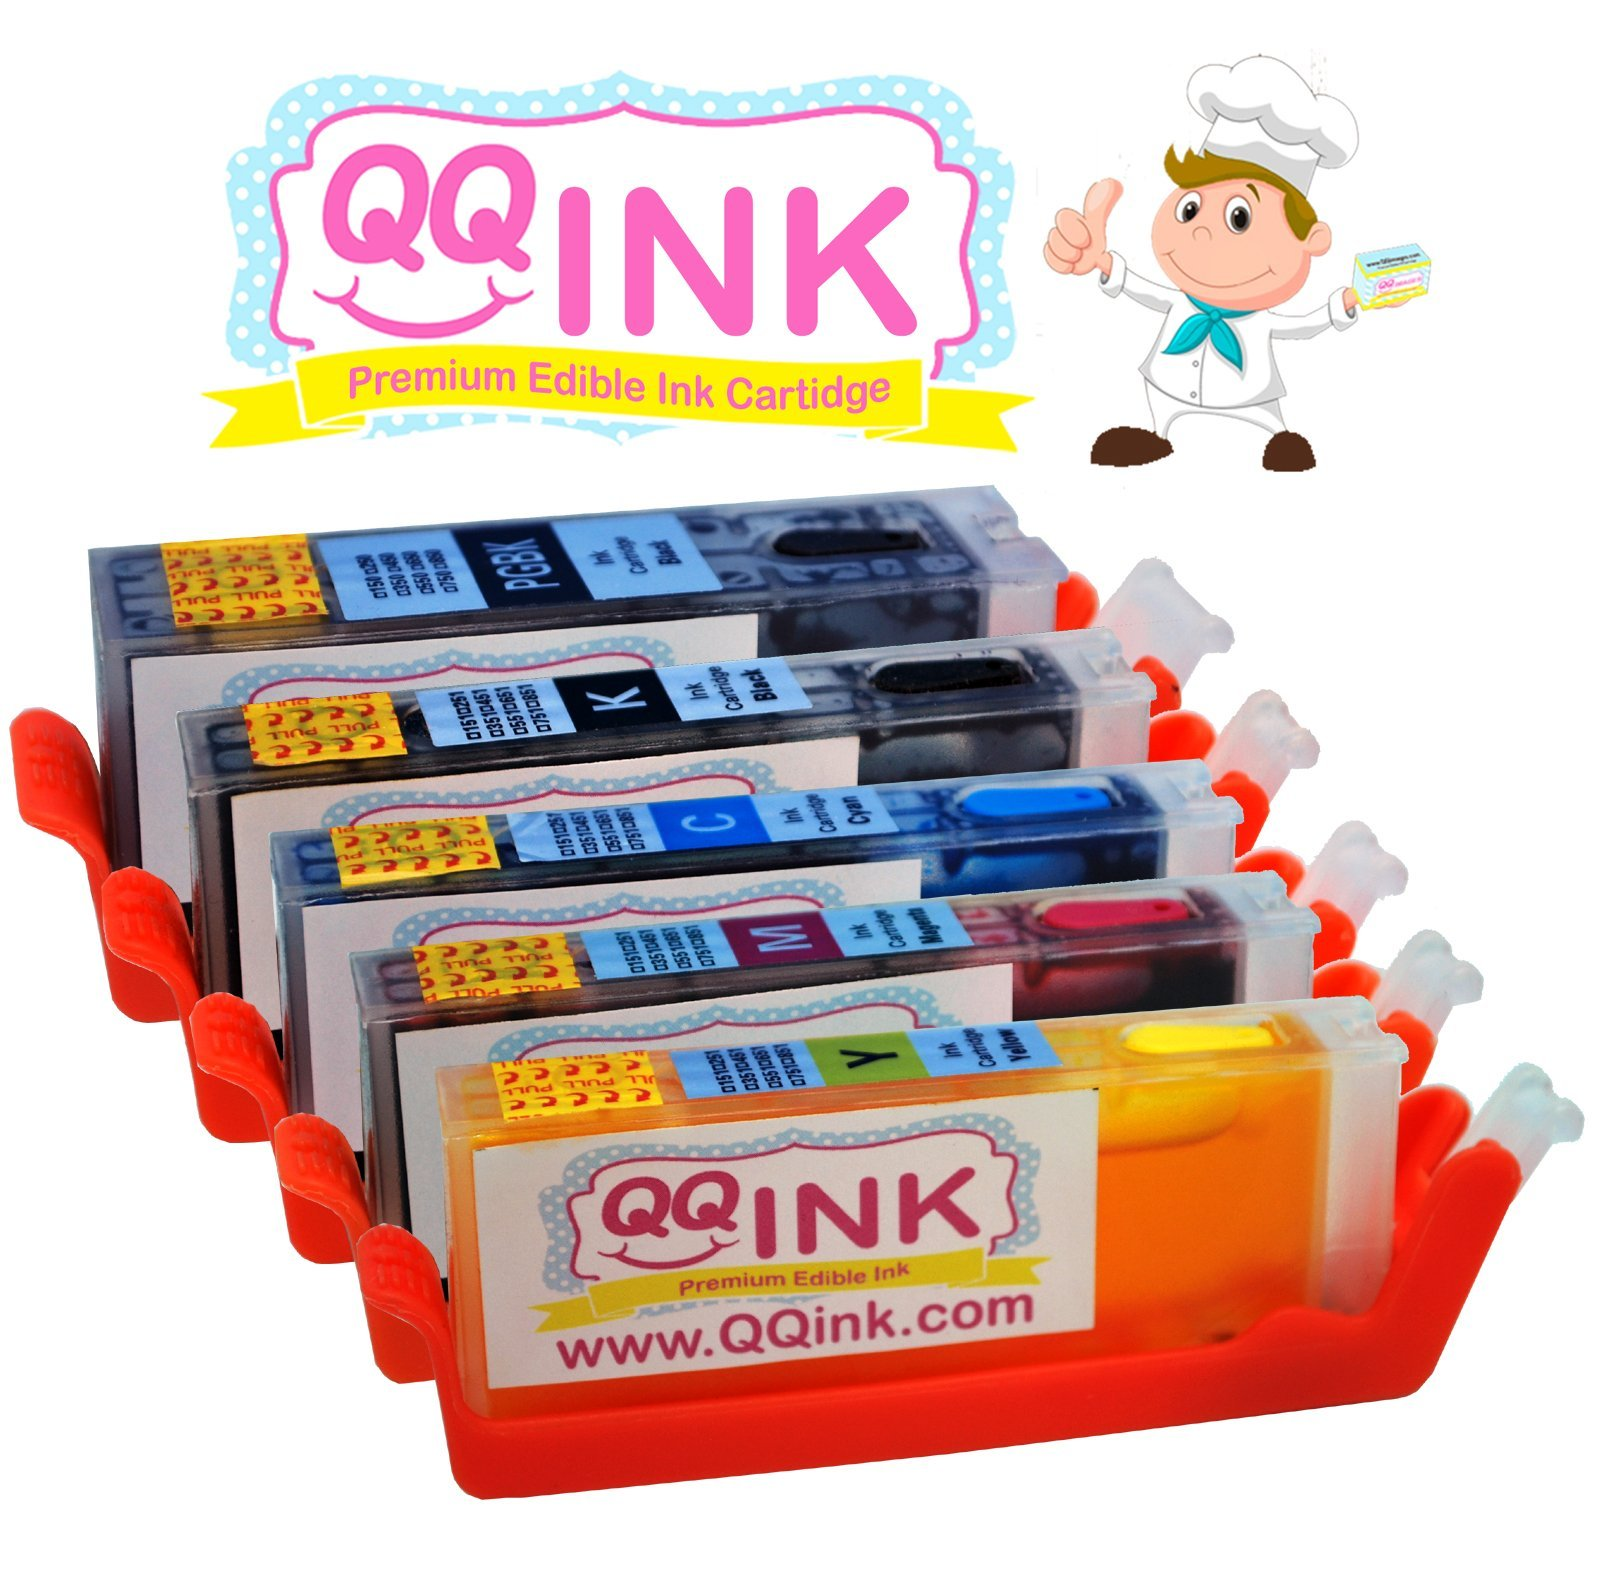 REFILLABLE Edible Cleaning Ink Cartridge - Canon Hi-Yield ...